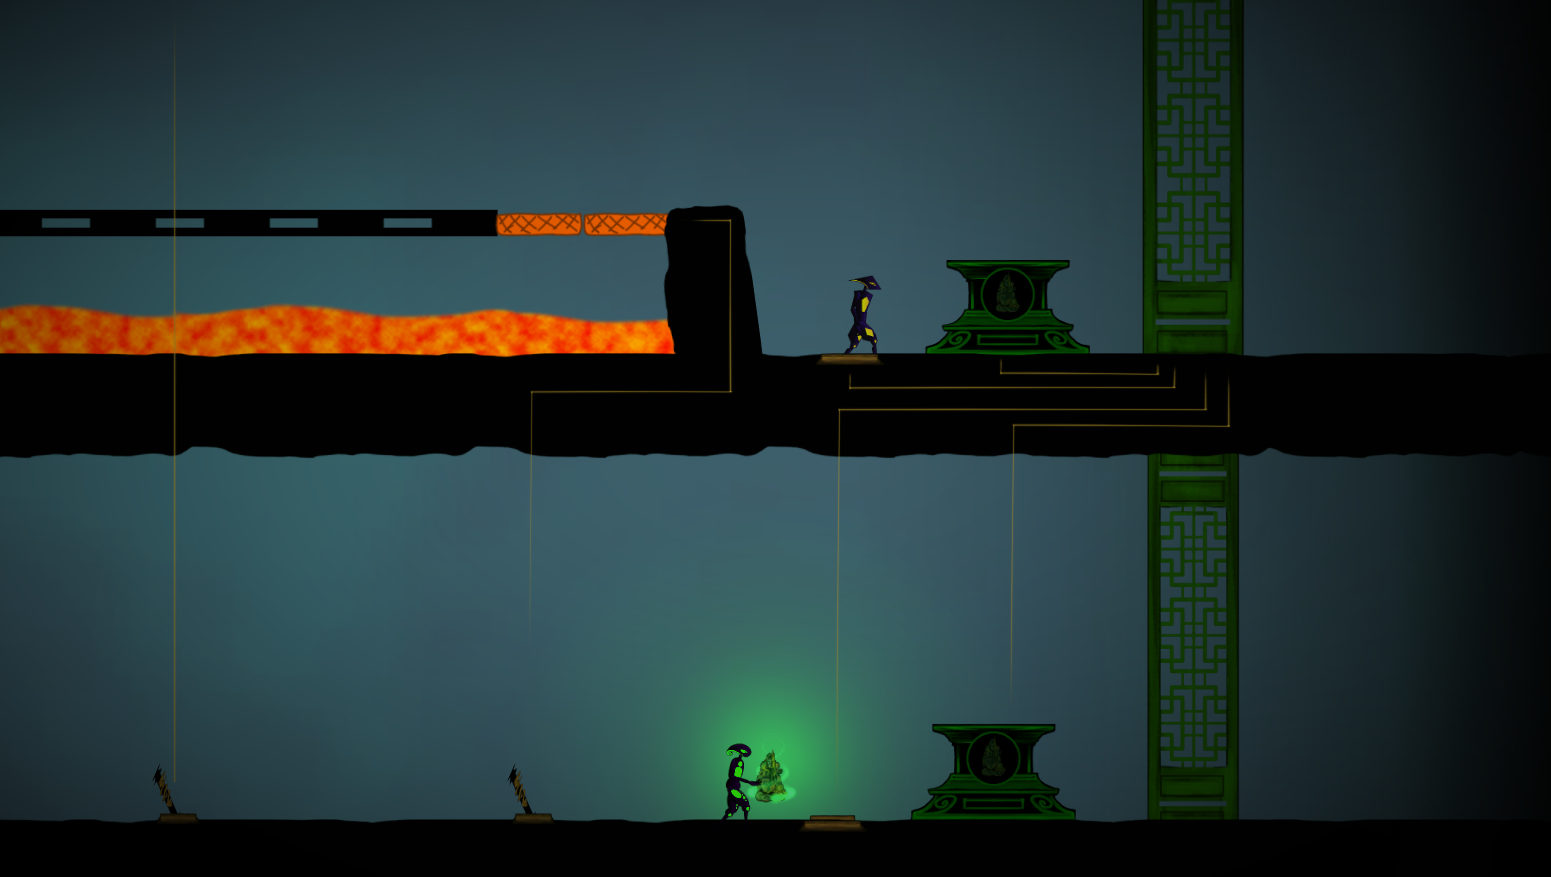 The end of the first Greenlight level, now with some connectors!